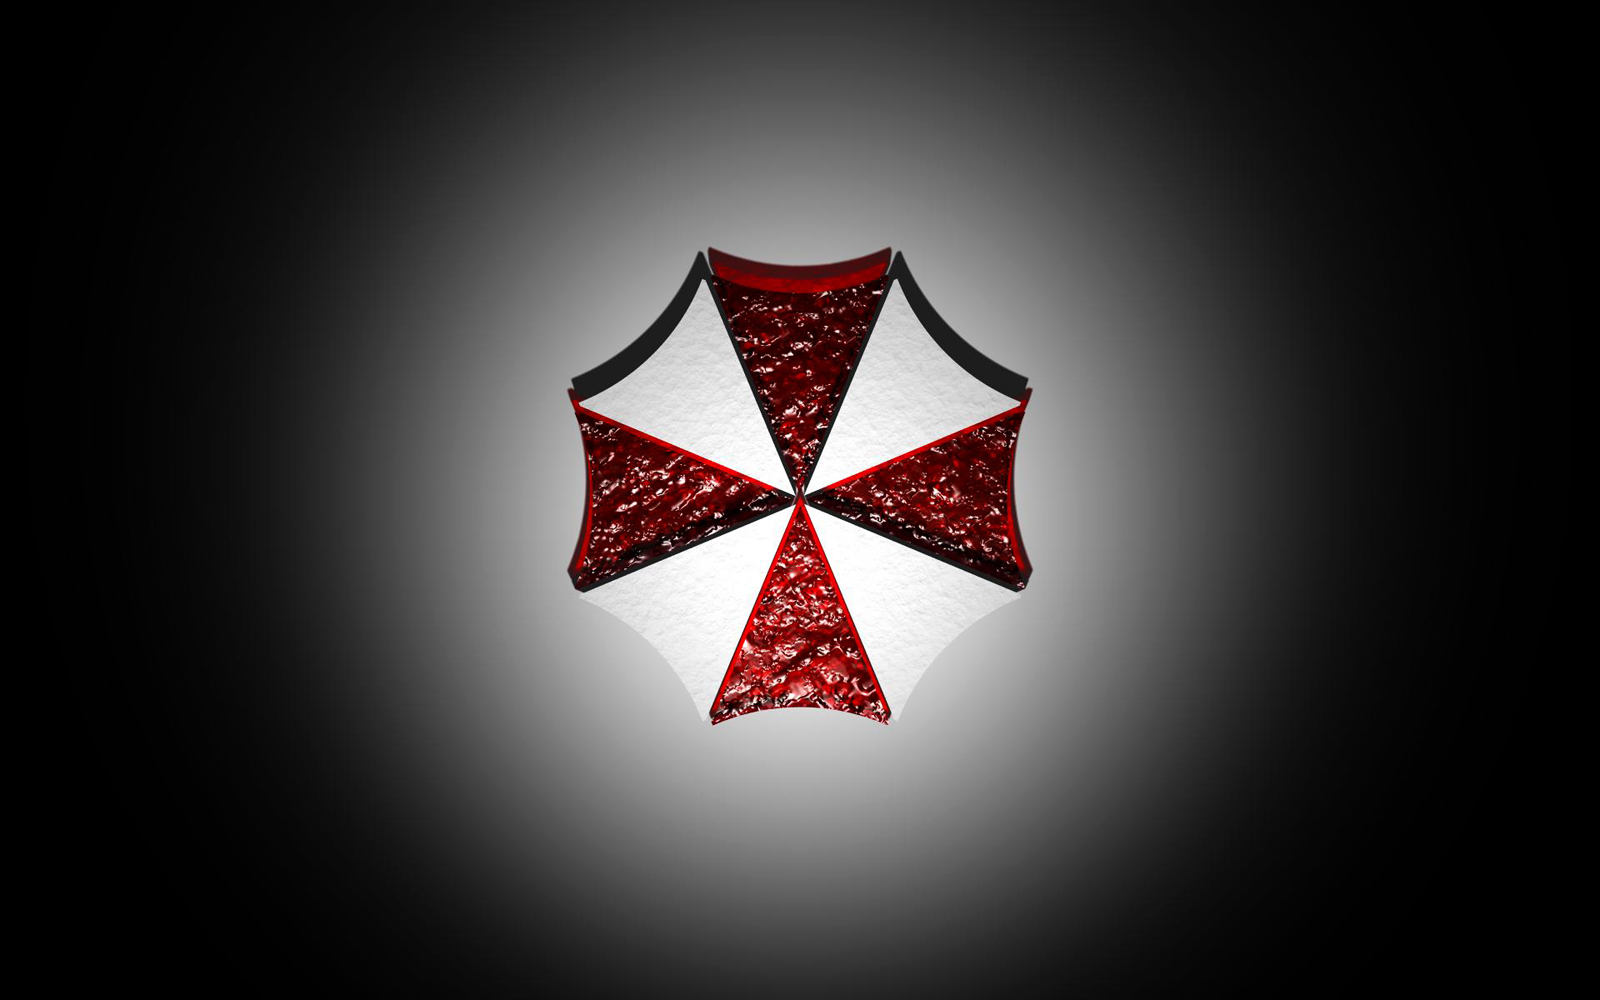 Umbrella corporation logo hd wallpapers desktop wallpapers umbrella corp logo hd wallpaper voltagebd Images